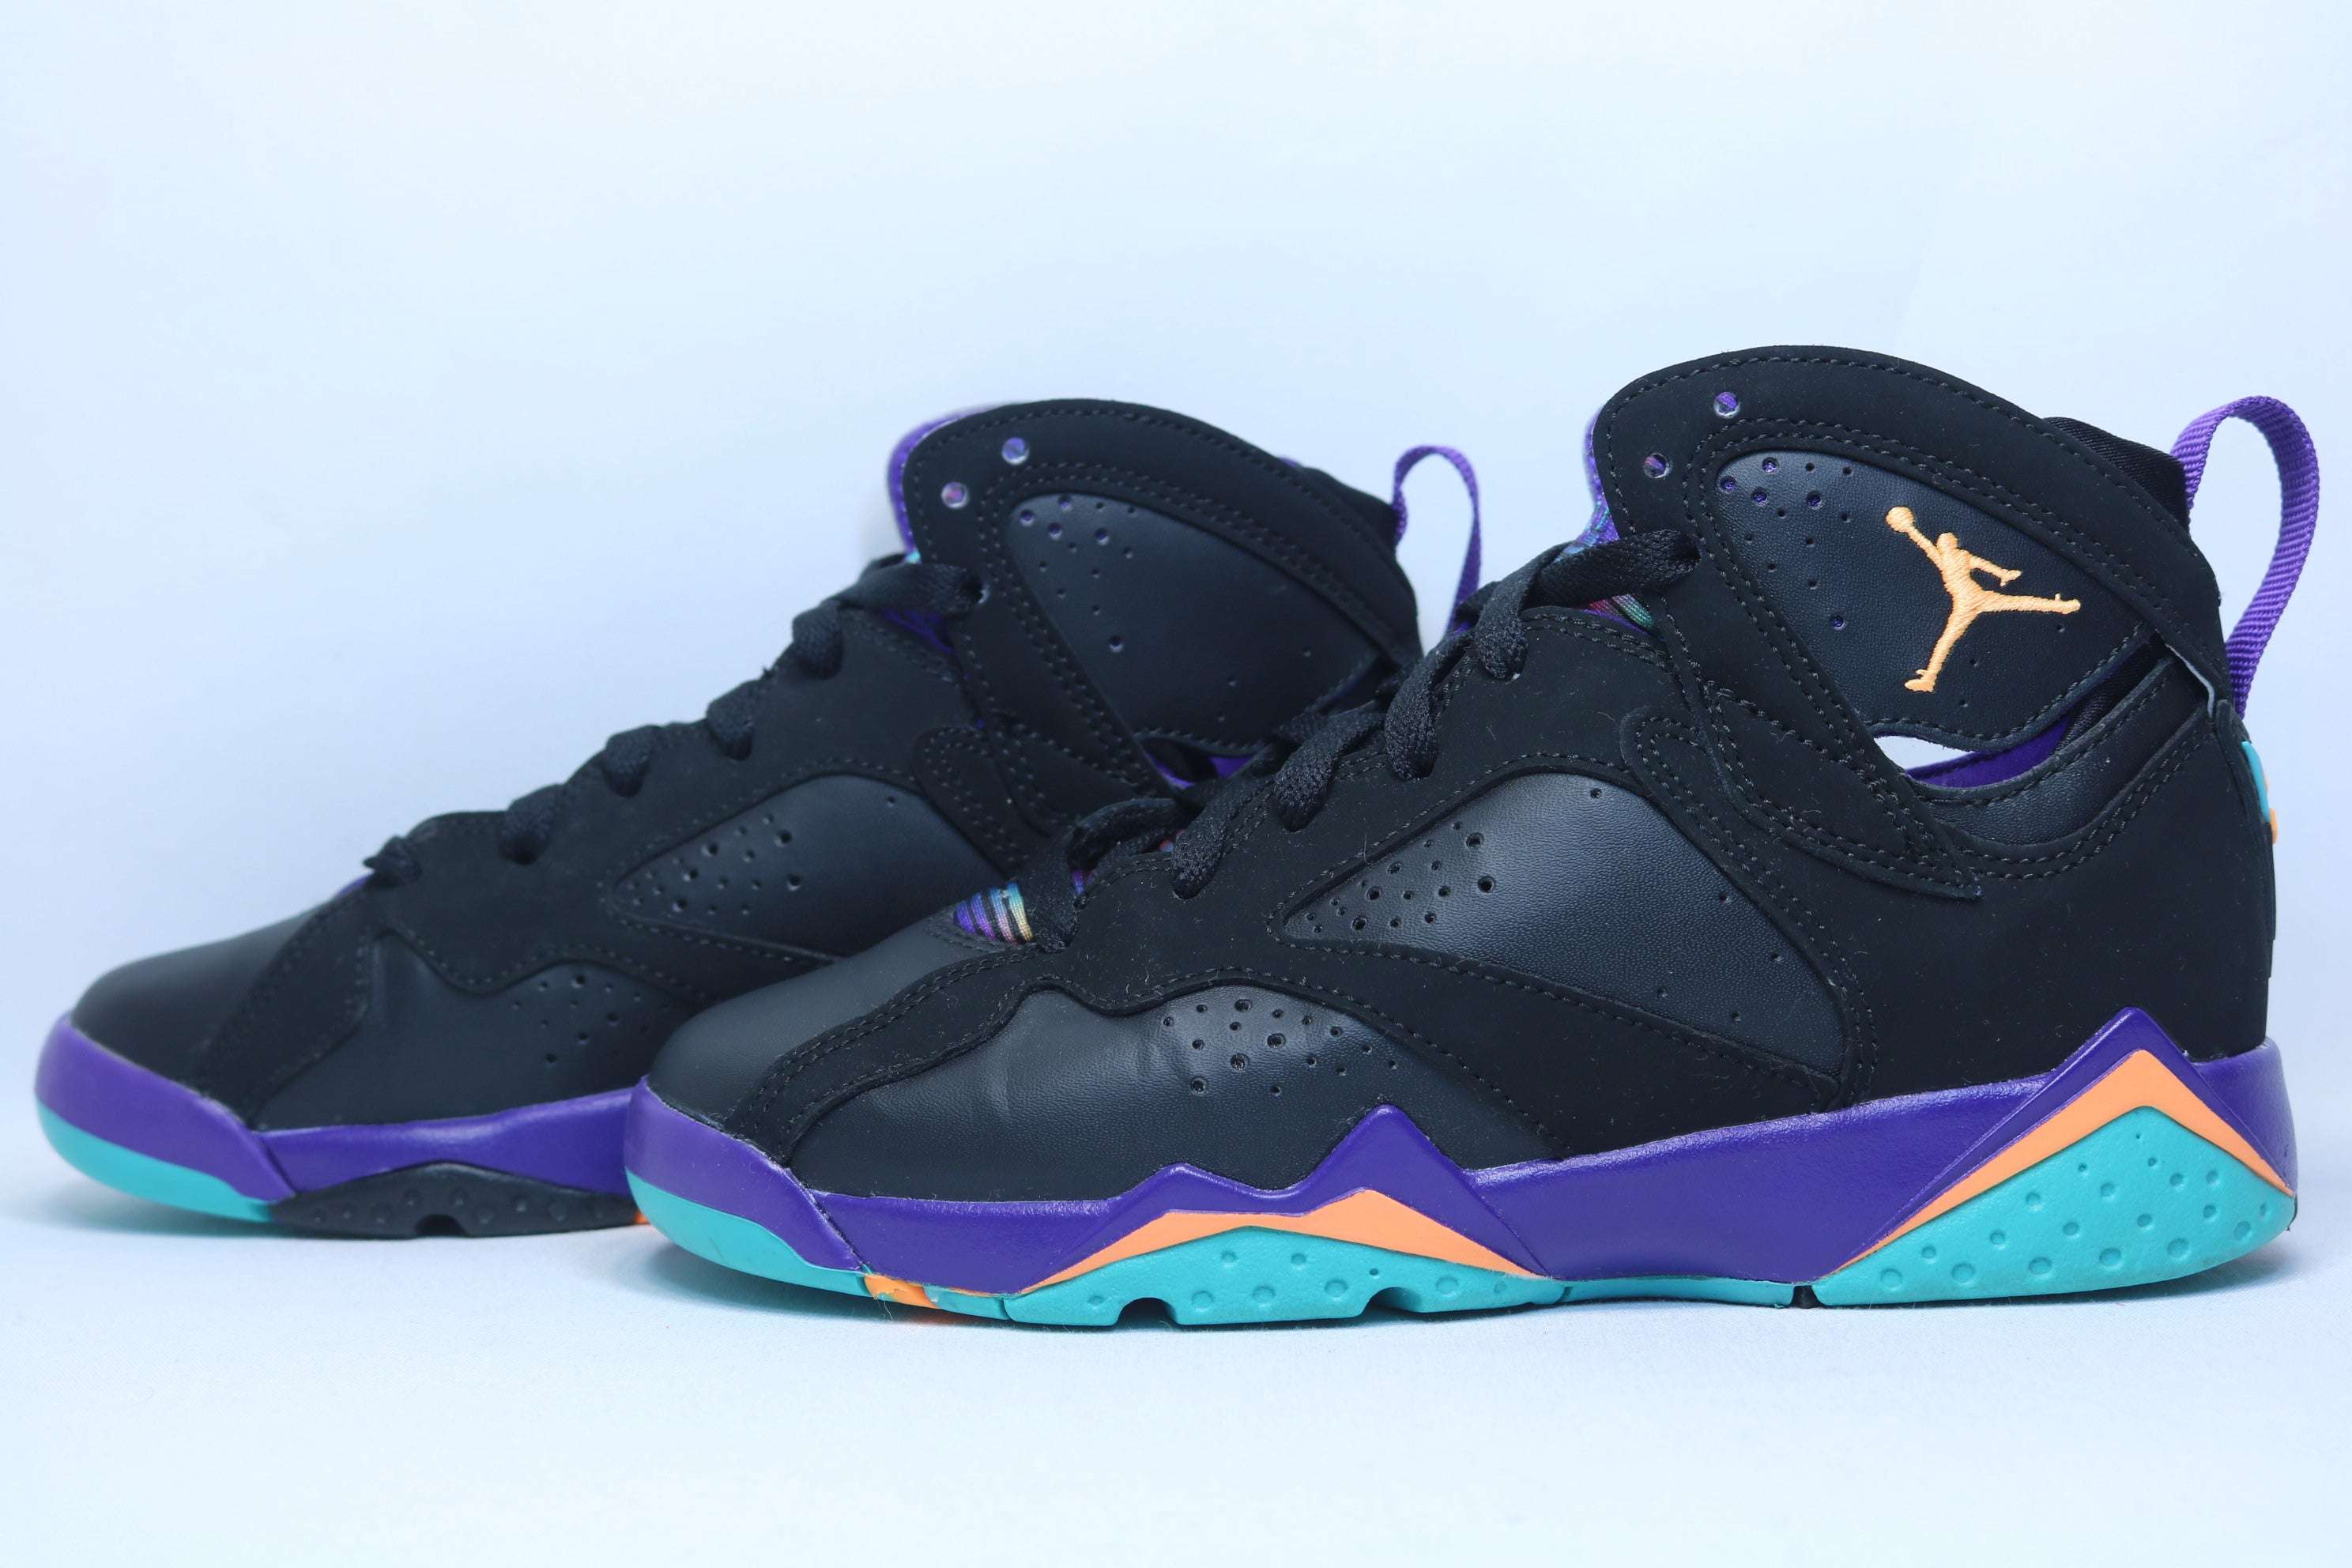 low price sale sale usa online speical offer Jordan 7 Lola Bunny For Sale – The Sole Library